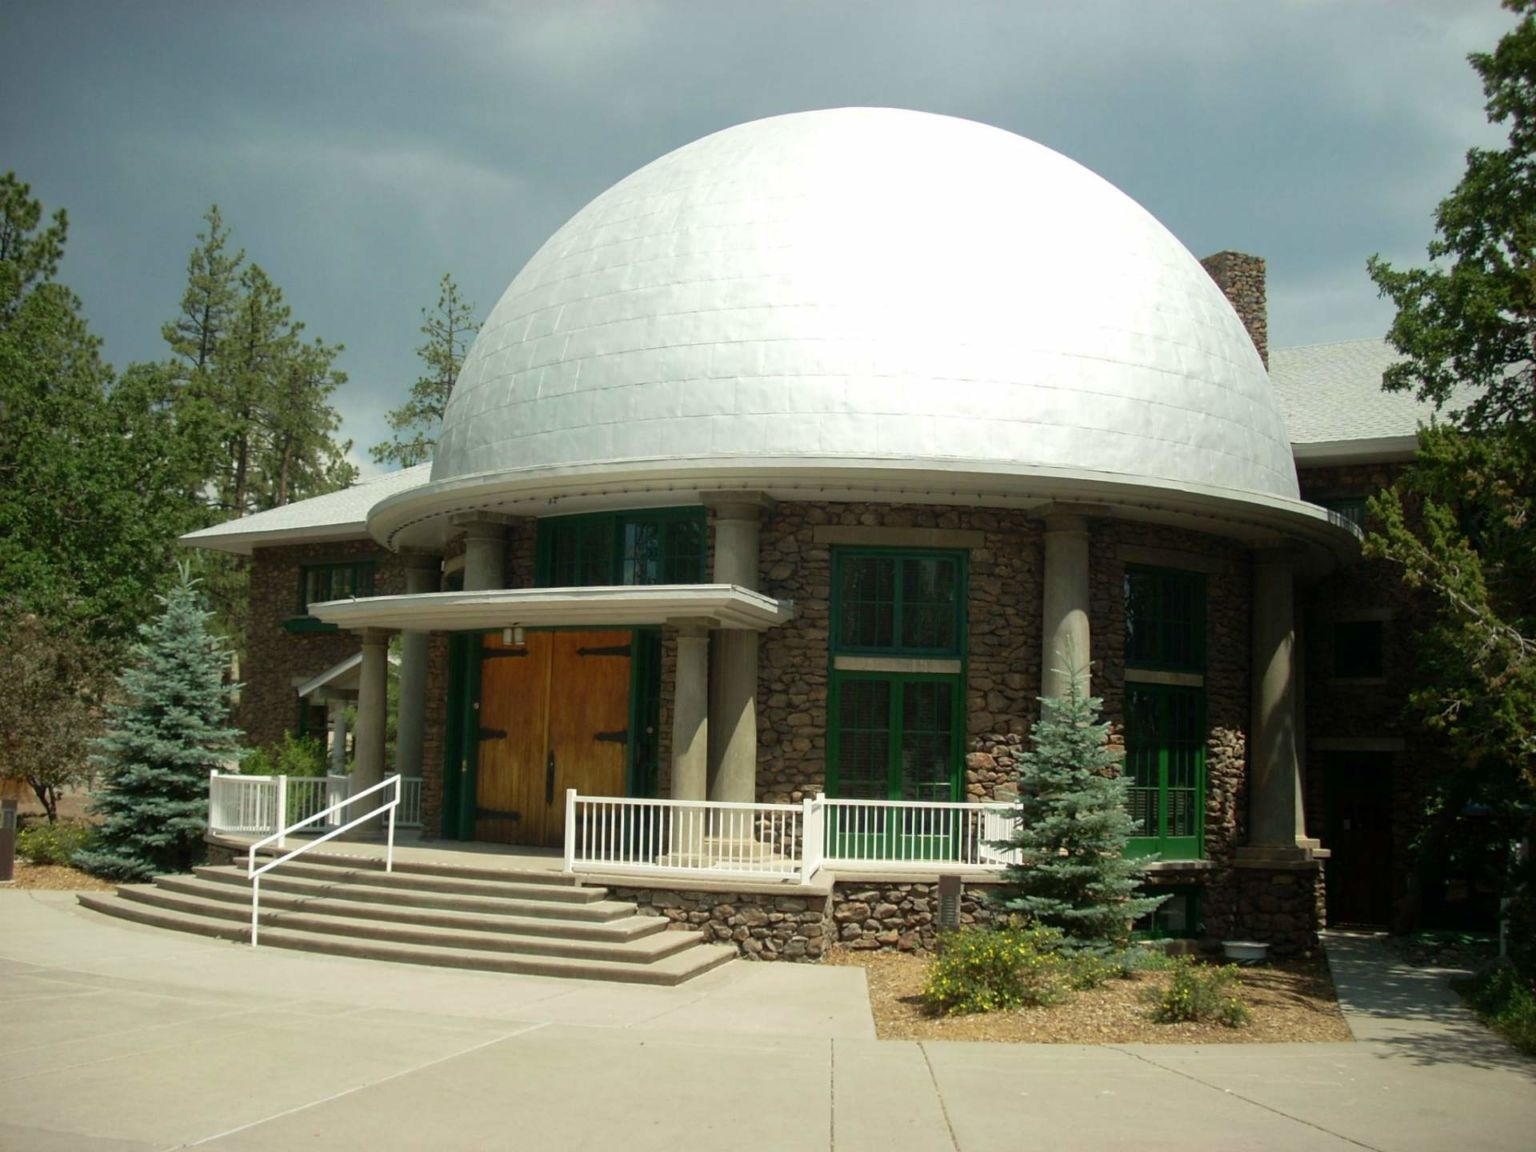 http://www.tripper.pt/wp-content/uploads/2016/06/Lowell-Observatory-in-Flagstaff-Arizona-768x576@2x.jpg